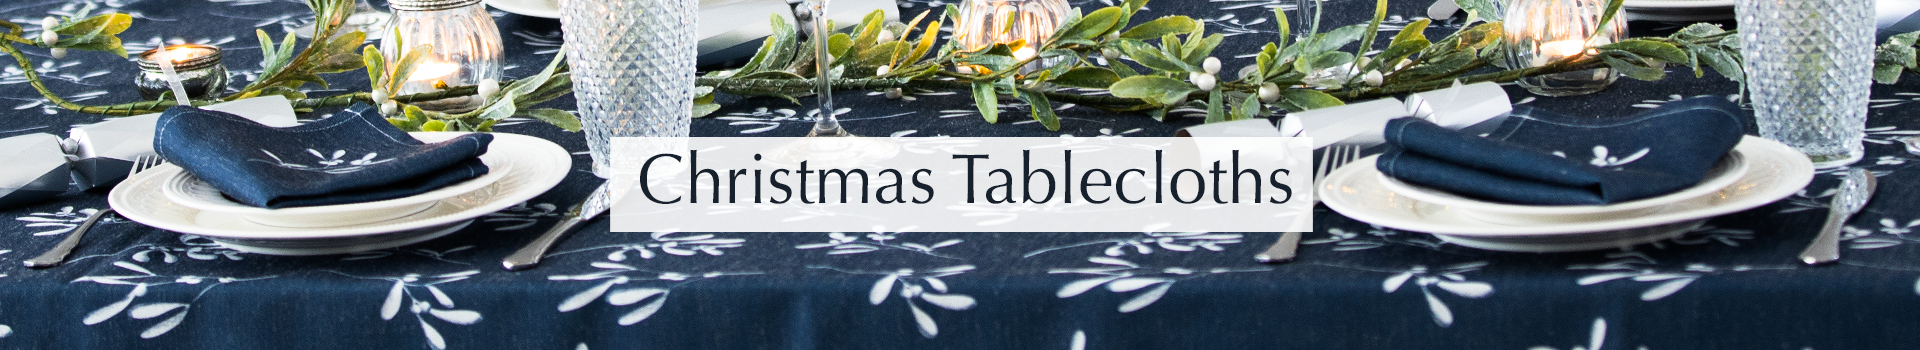 christmas-tablecloths-copy-2.png